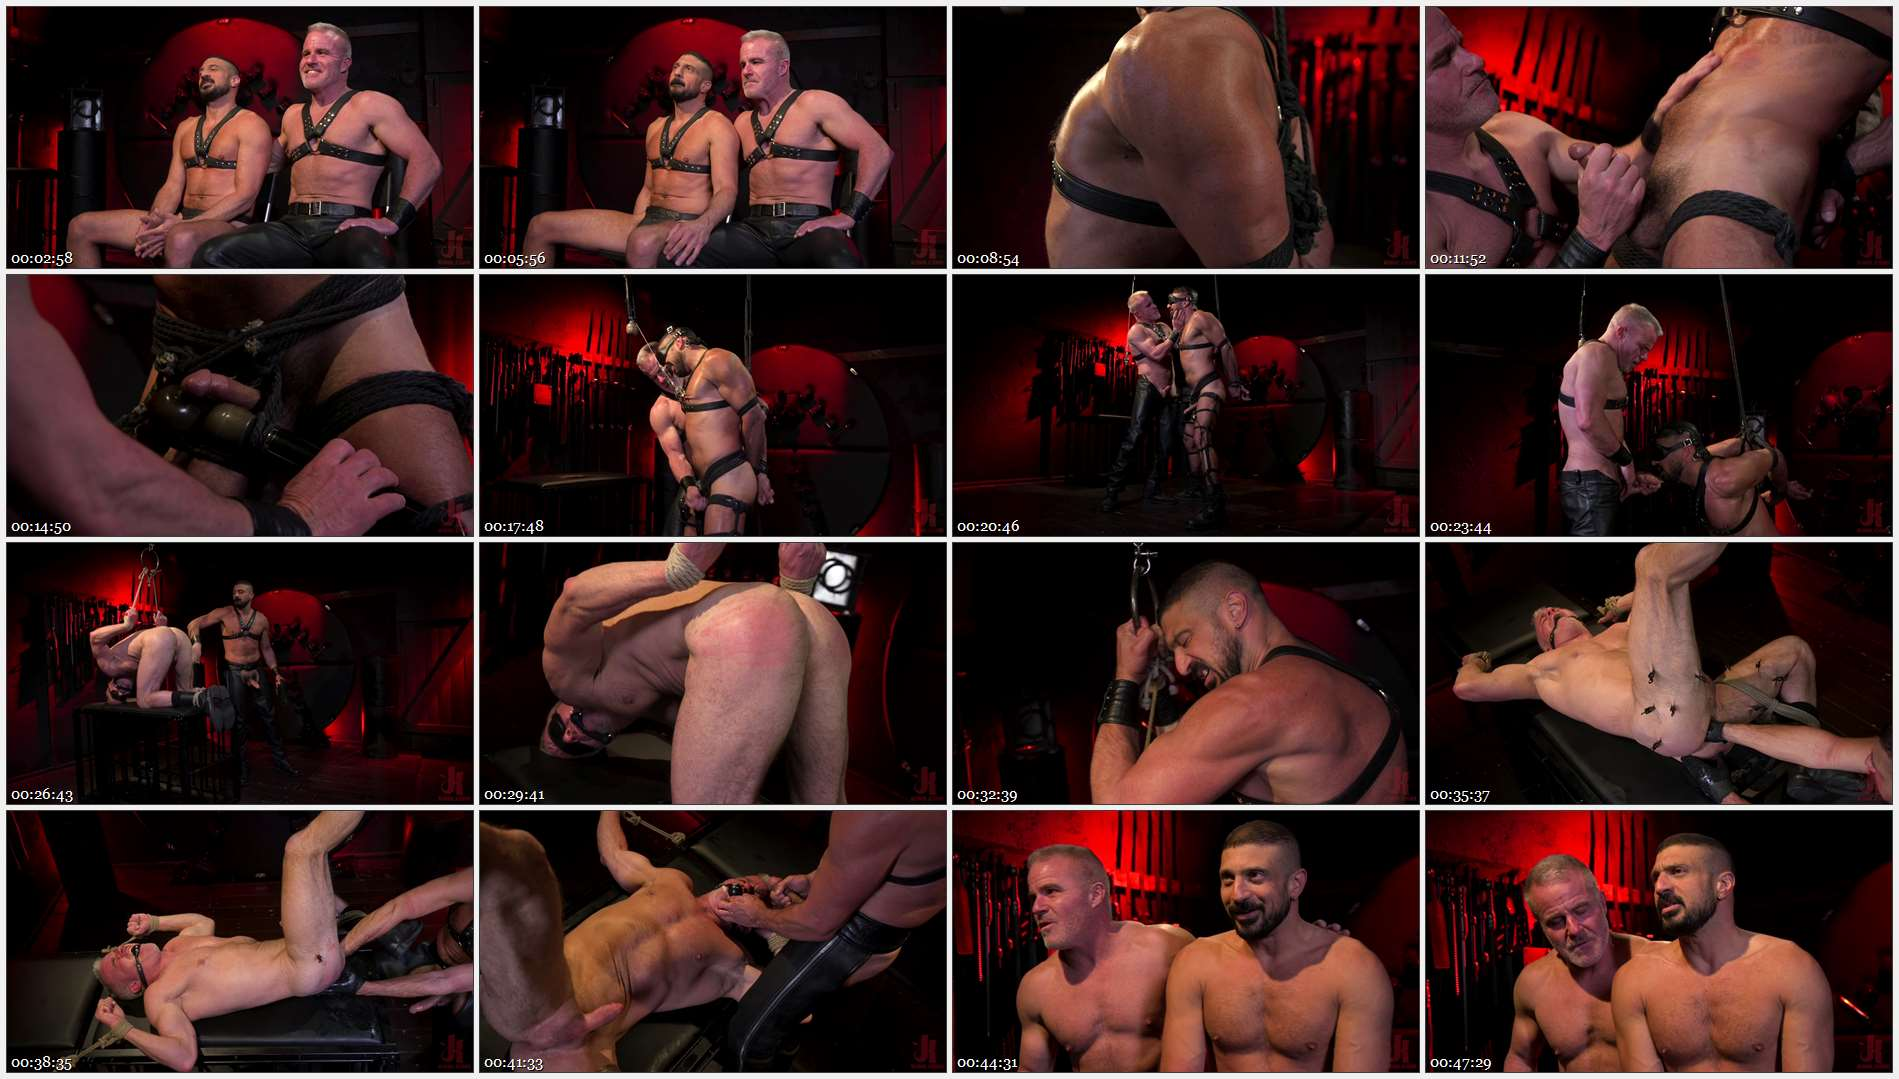 Marco Napoli – Power Fuck: Hot Leather Men Inflict Muscle Domination & Intense Pain